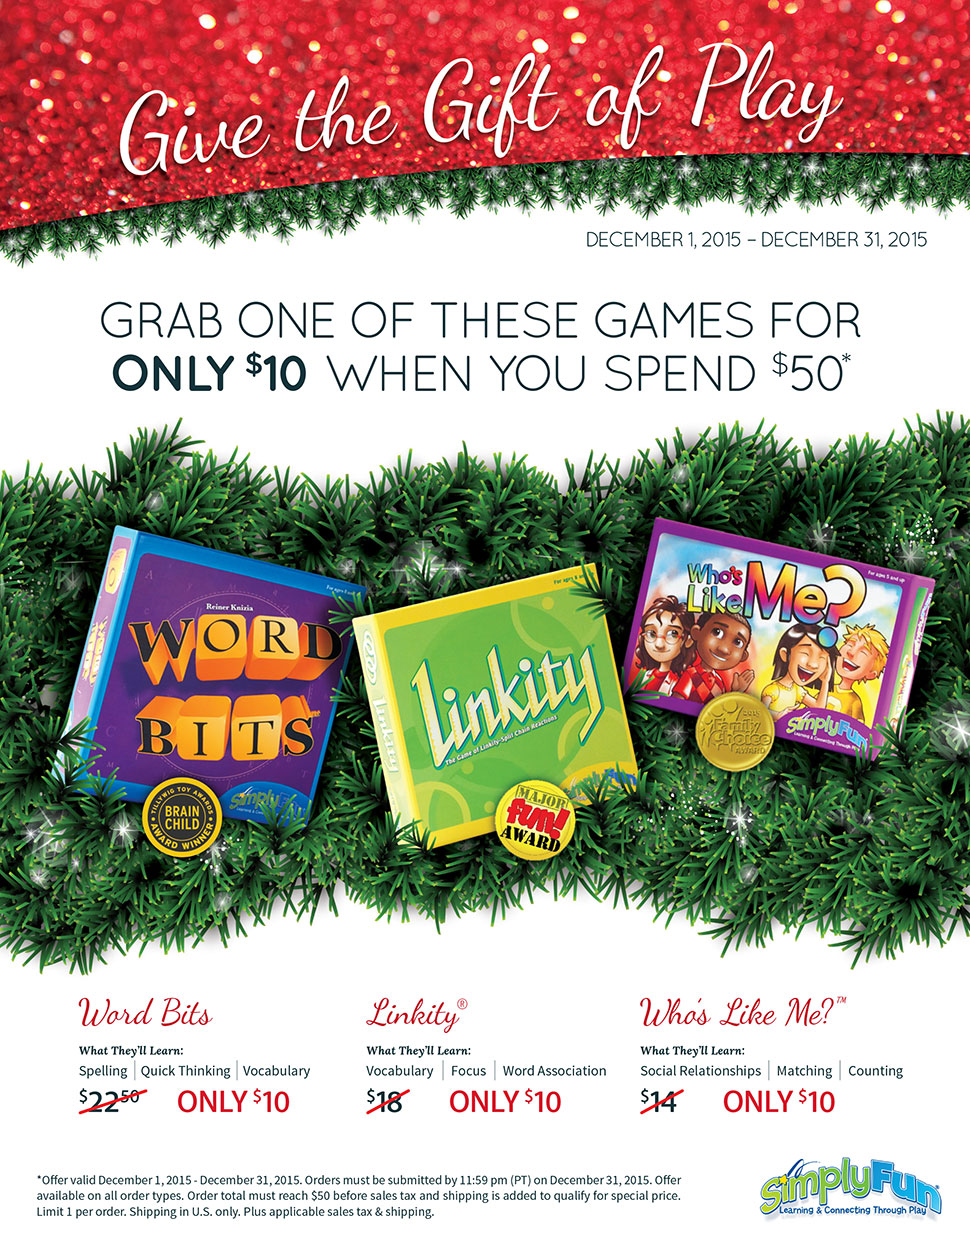 SimplyFun December Special! Get one of these games for only $10 when you spend $50!